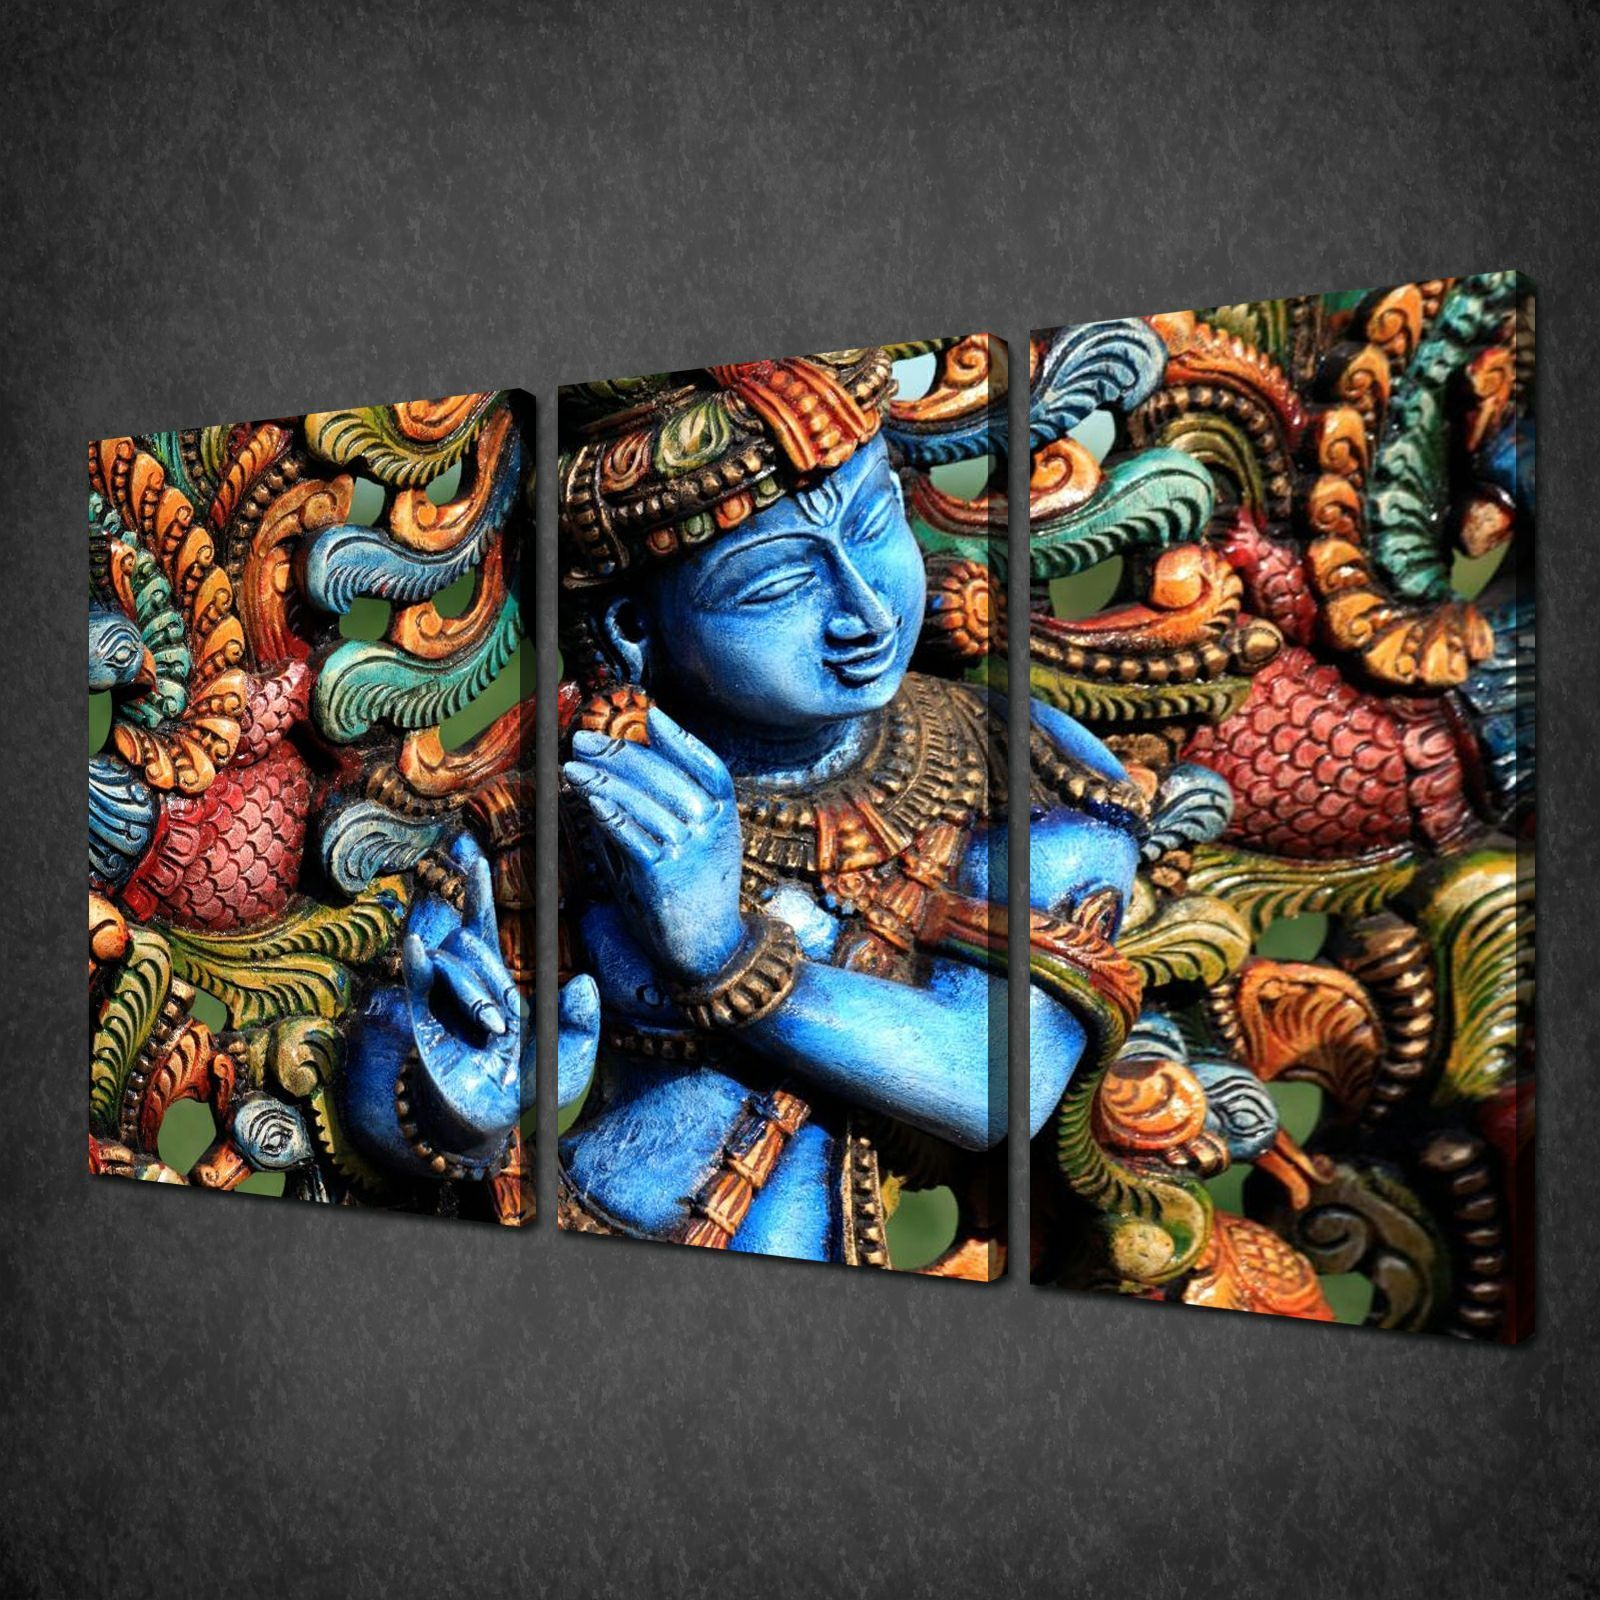 Canvas Print Pictures. High Quality, Handmade, Free Next